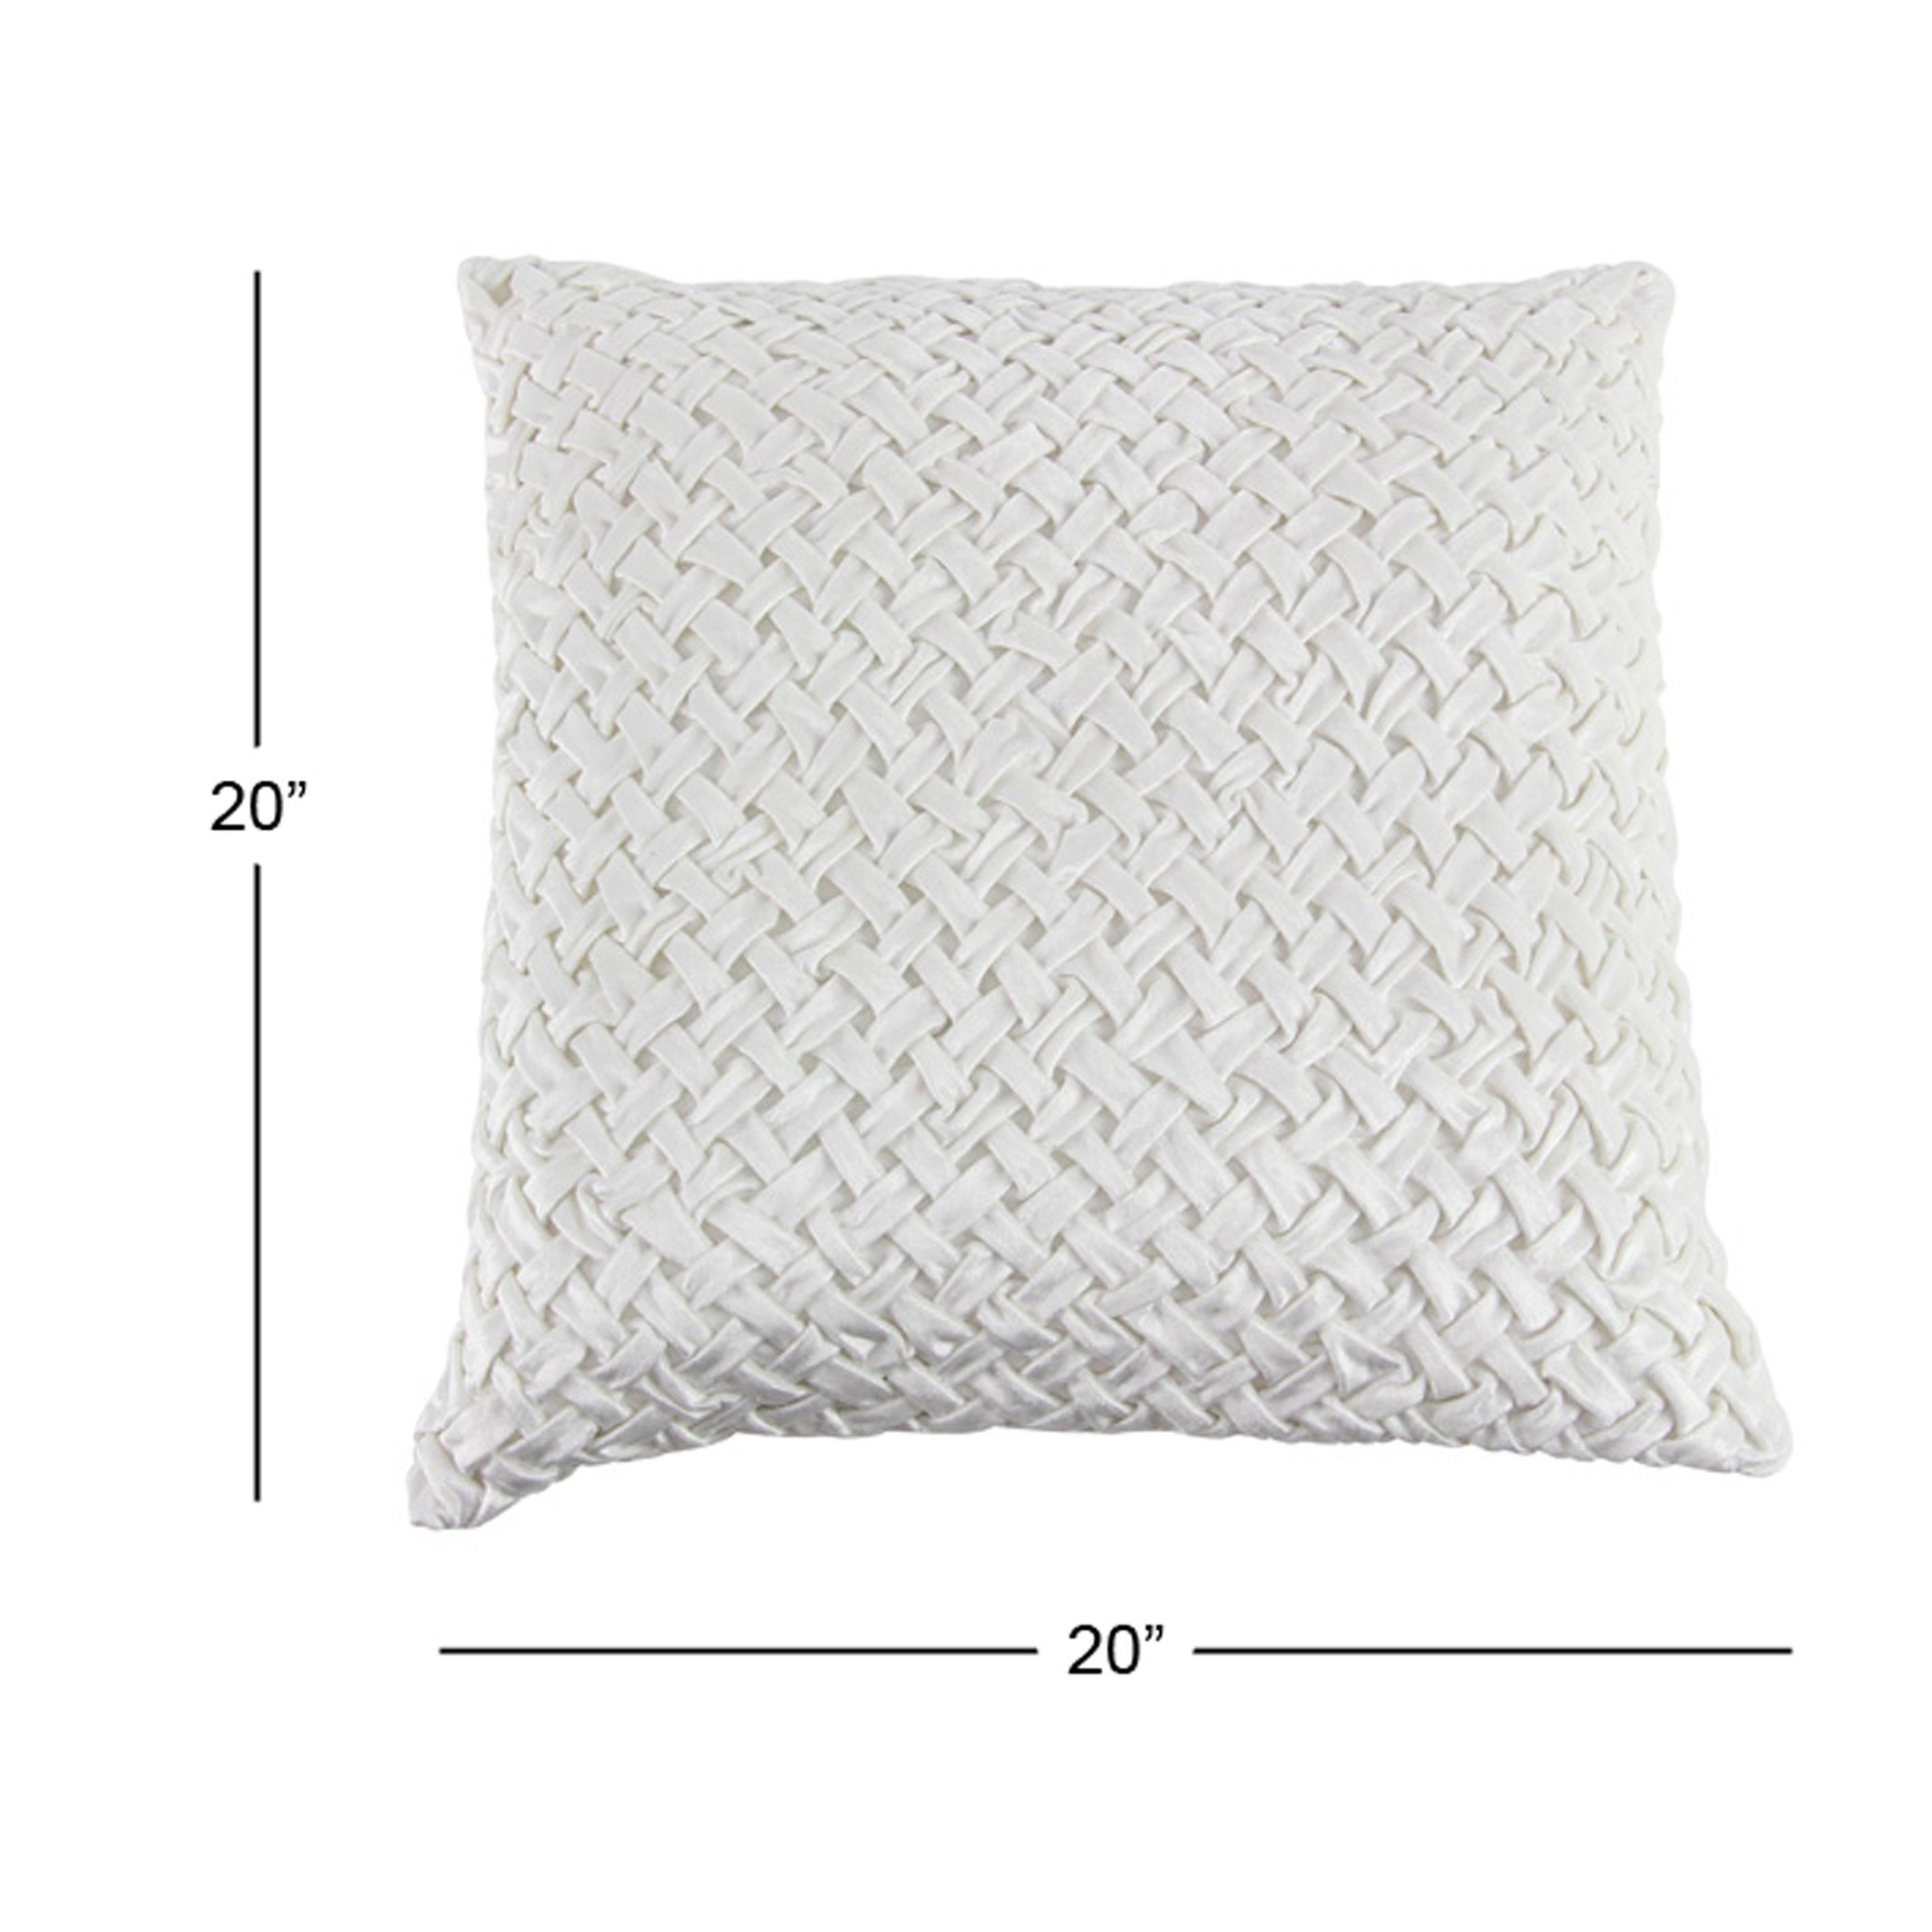 Shop Modern 20 x 20 Inch Square White Smocking Work Pillow - Free Shipping  Today - Overstock.com - 20445574